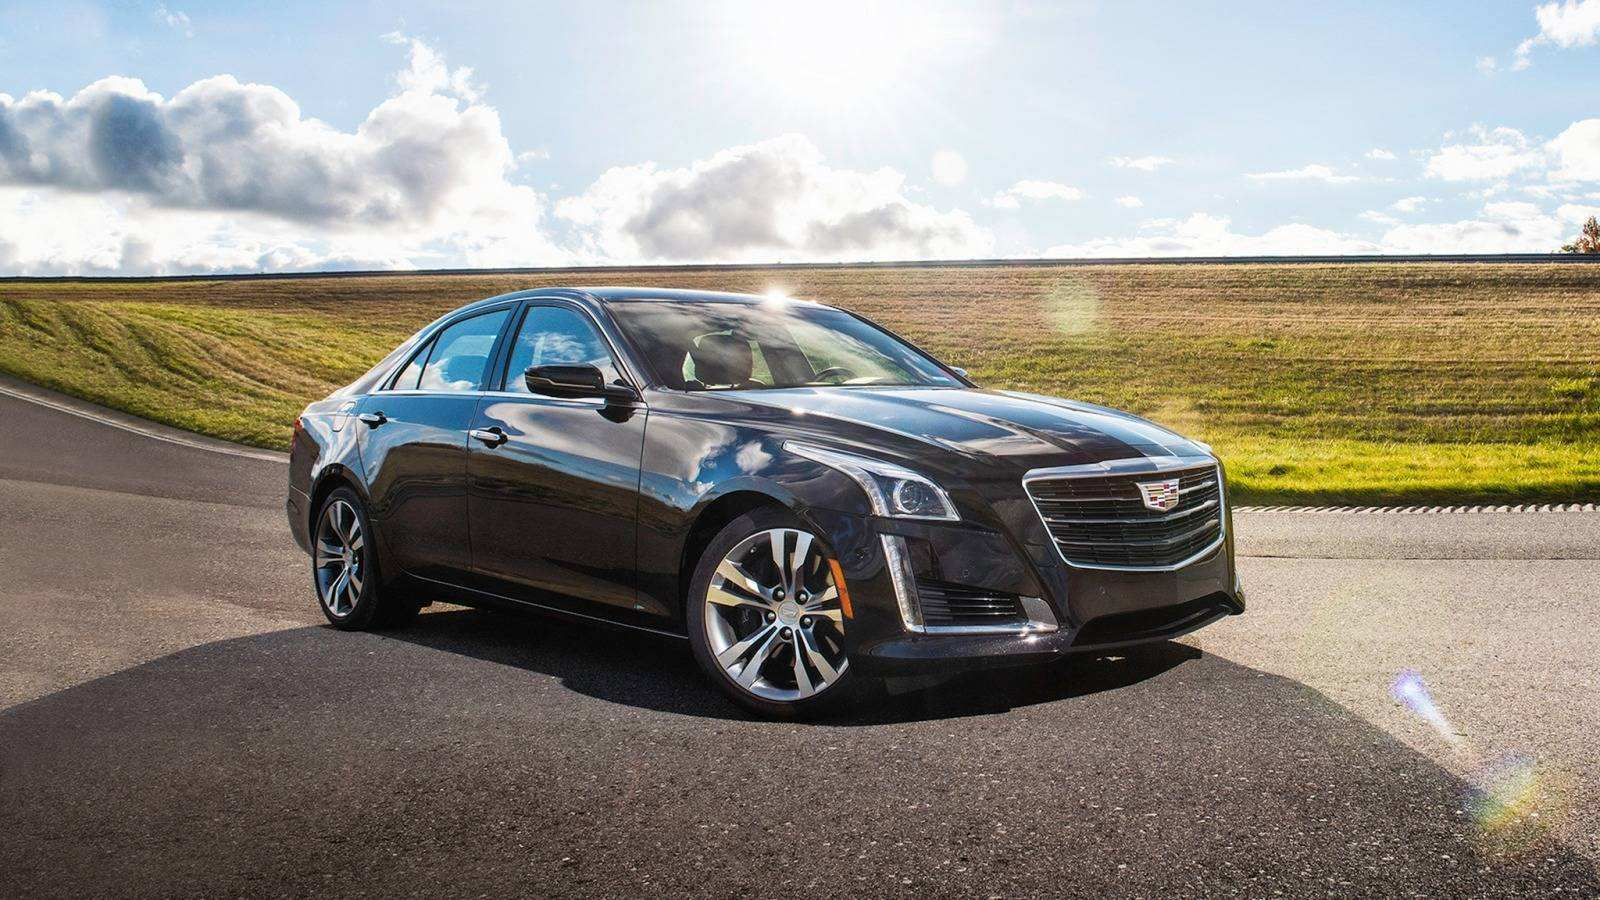 89 Concept of Best Cadillac Ct5 2019 Specs And Review Performance by Best Cadillac Ct5 2019 Specs And Review